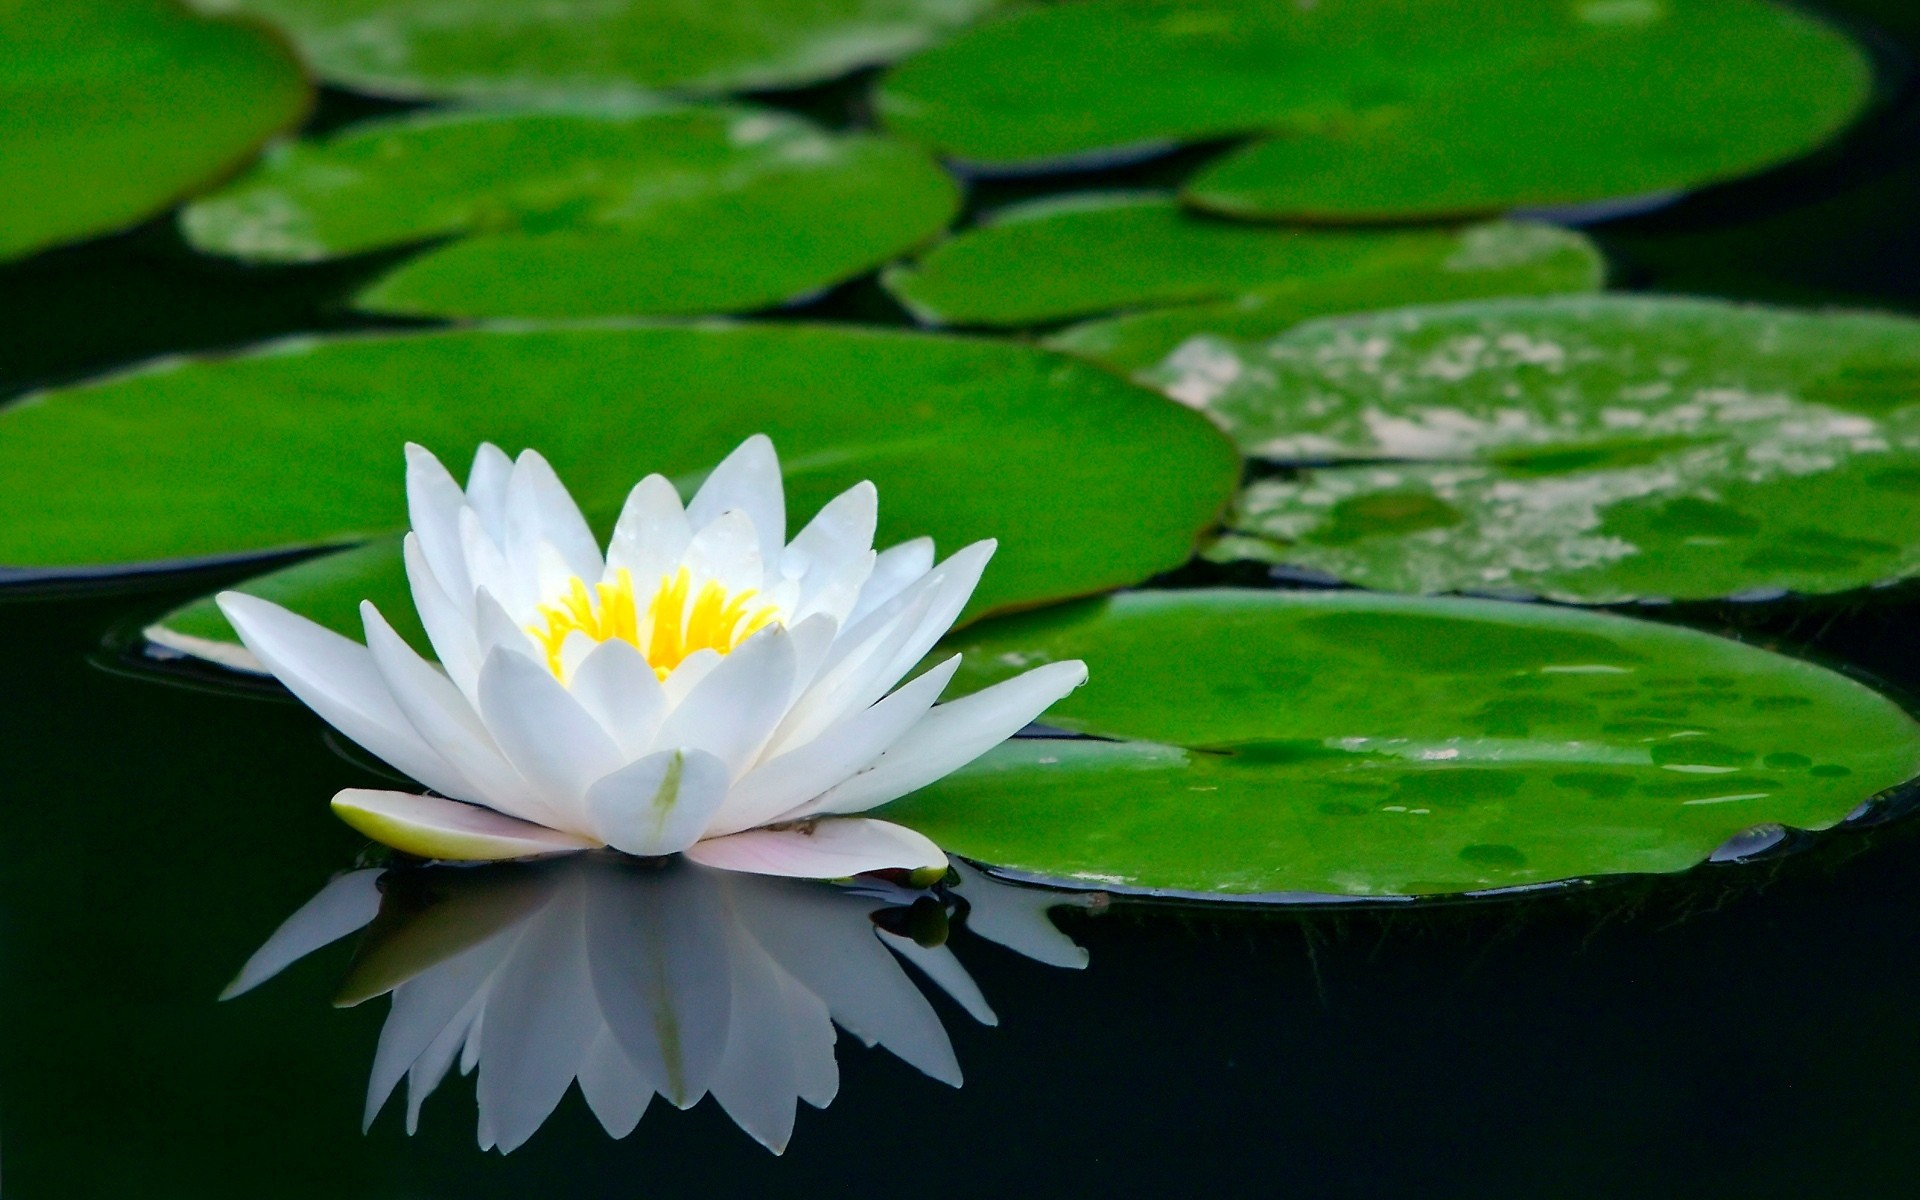 Black Lotus Flower Wallpaper Desktop Background For Widescreen